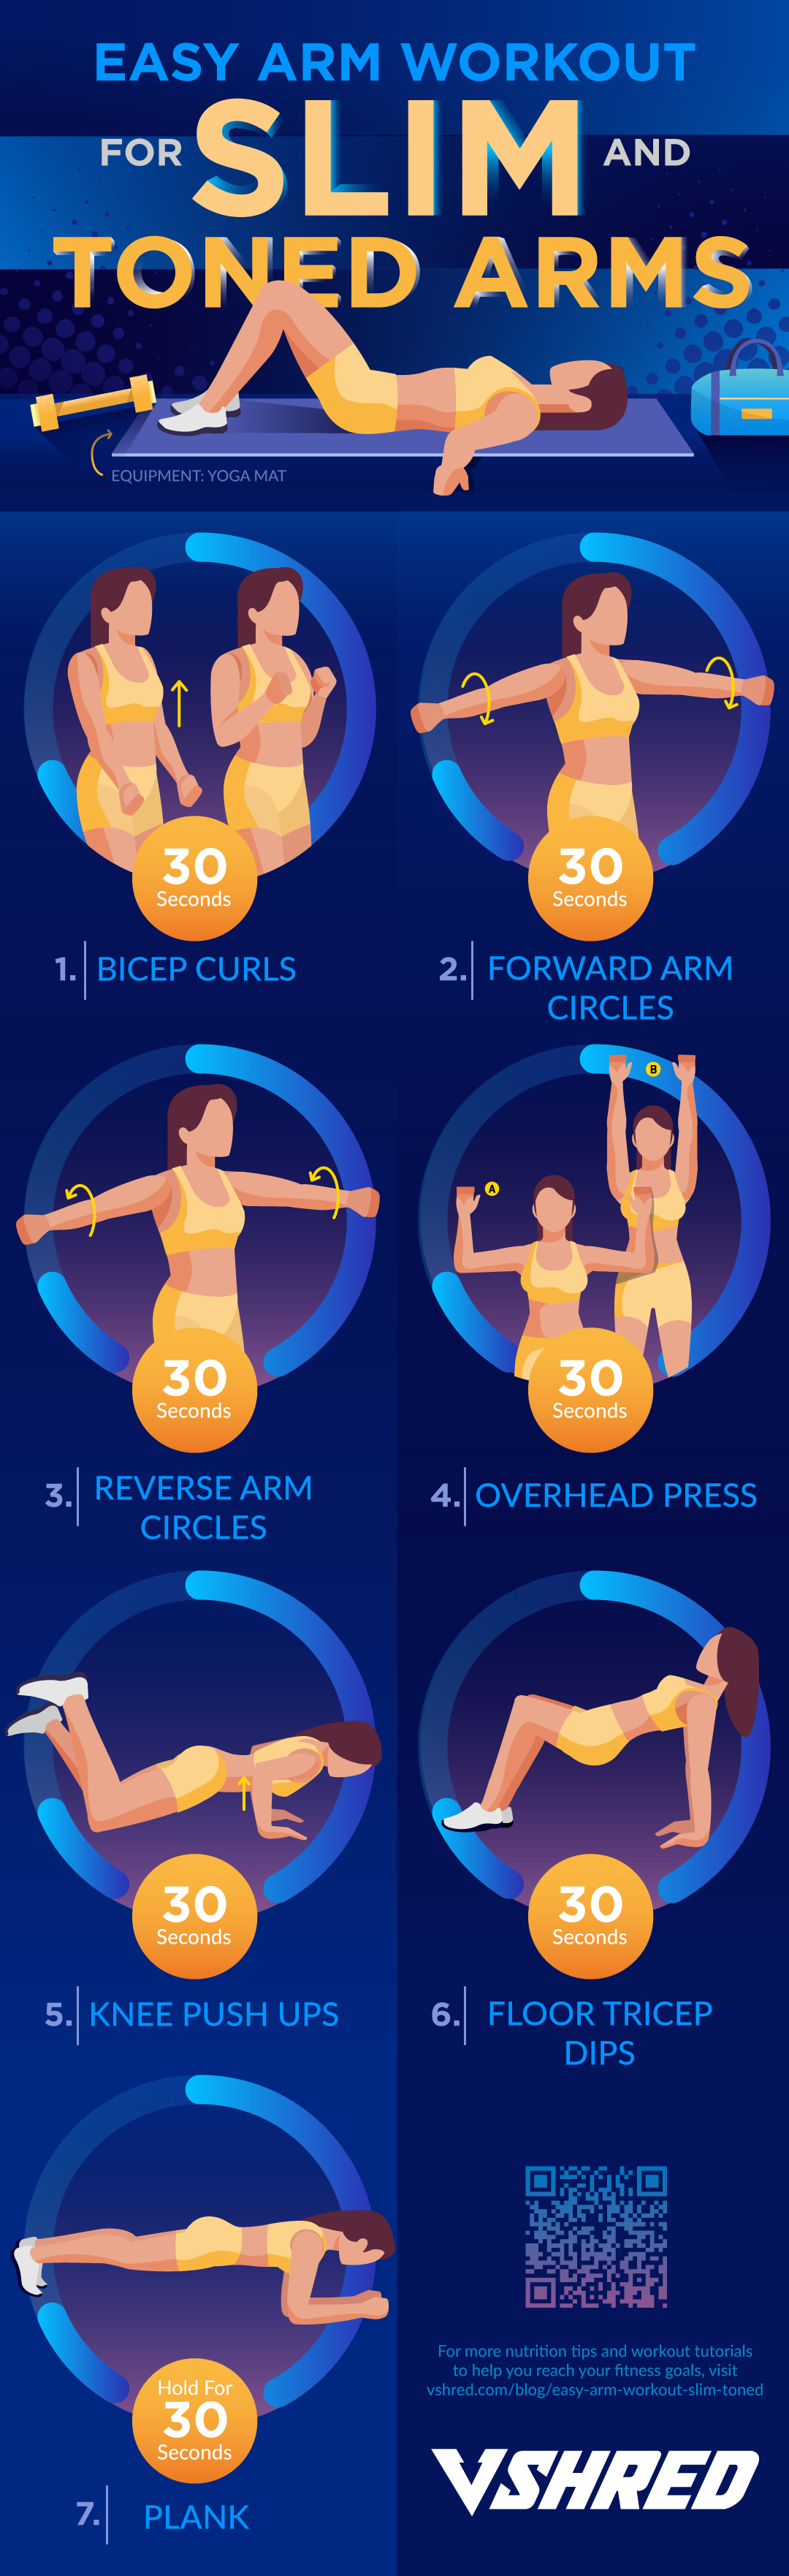 infographic | Easy Arm Workouts For Slim And Toned Arms | arm toning workouts